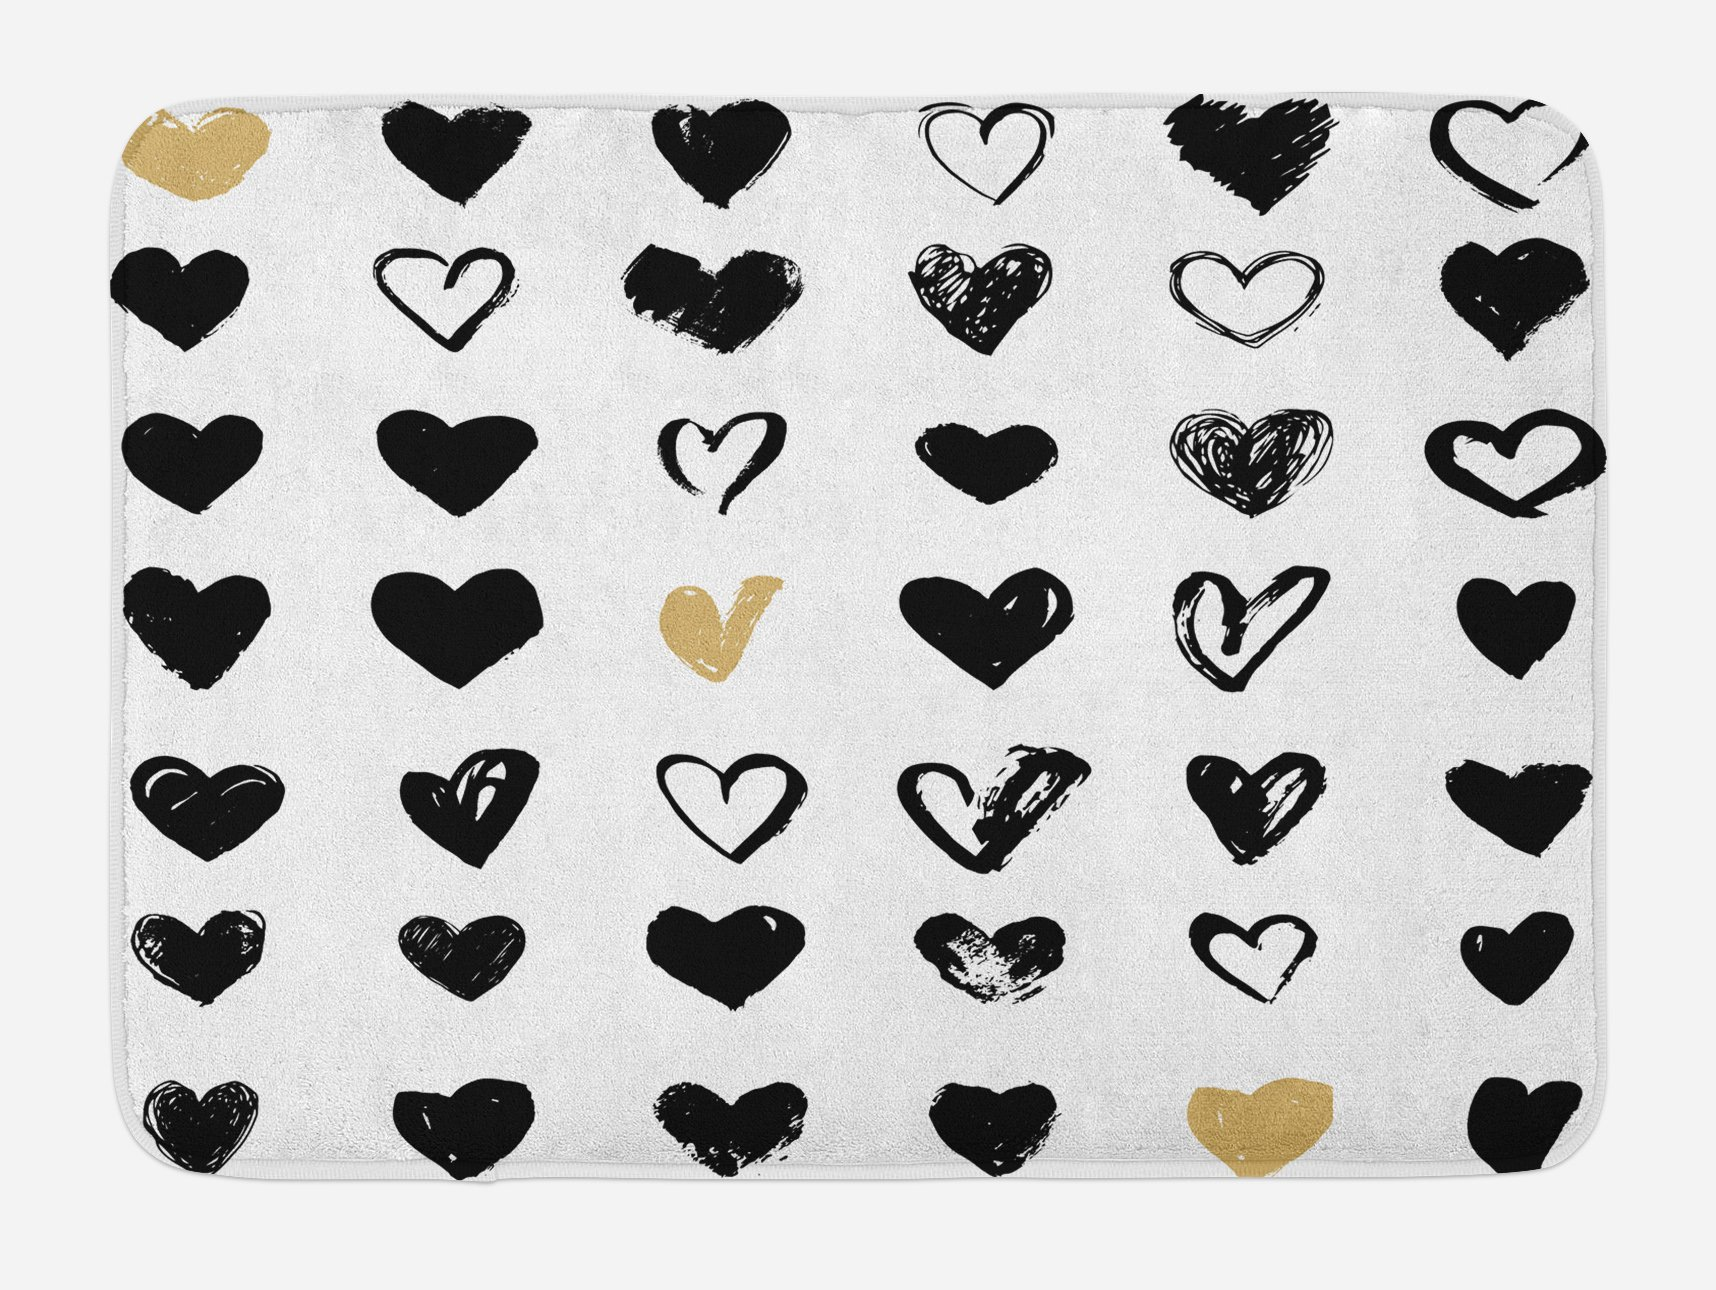 Ambesonne Love Bath Mat, Small Heart Icons Valentine's Theme Stylized Hipster Liking Spouse Couples Design, Plush Bathroom Decor Mat with Non Slip Backing, 29.5 W X 17.5 W Inches, Tan Black White